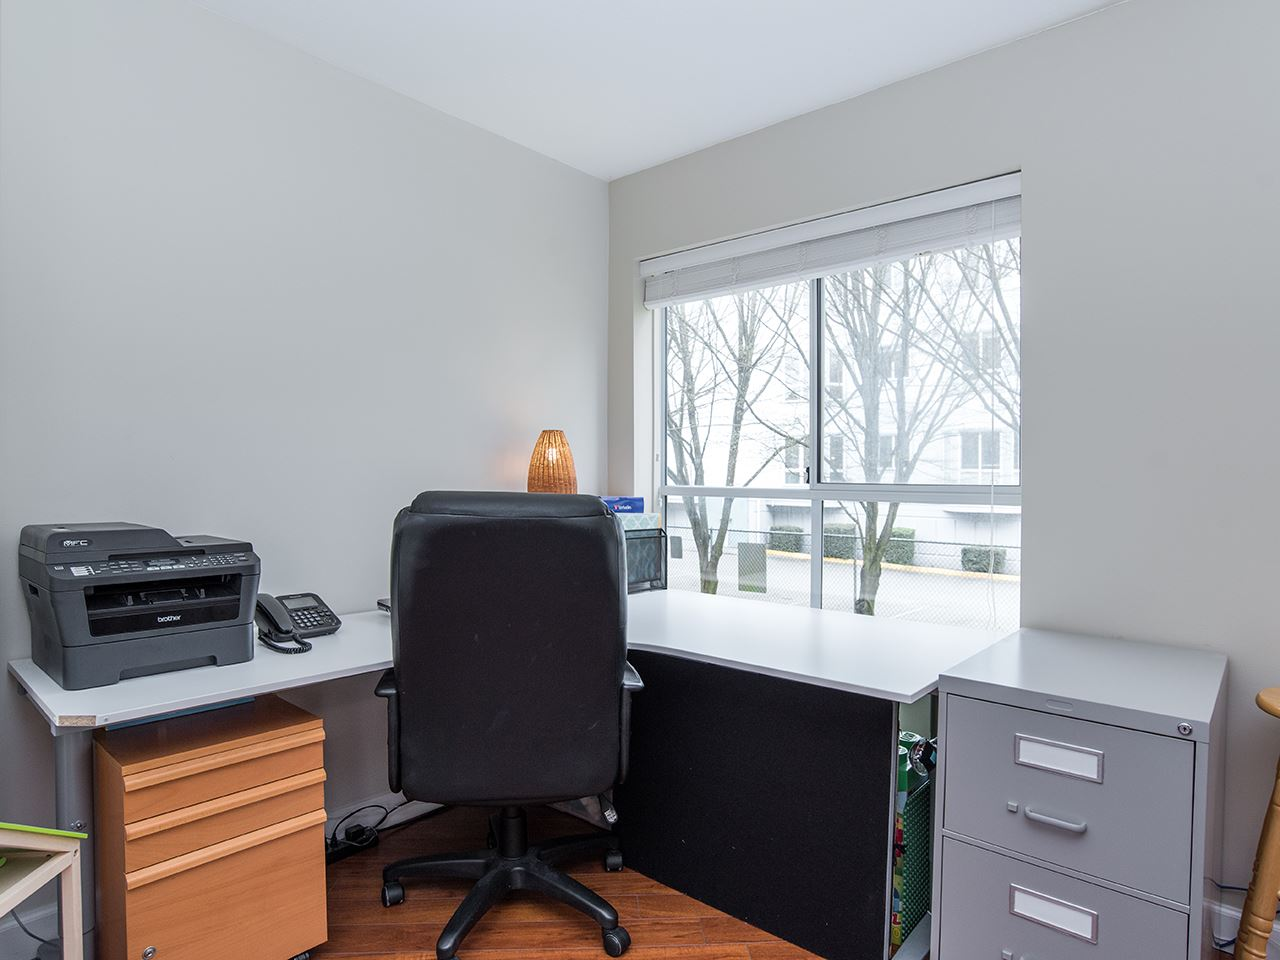 "Photo 13: 110 8651 ACKROYD Road in Richmond: Brighouse Condo for sale in ""The Cartier"" : MLS® # R2152253"